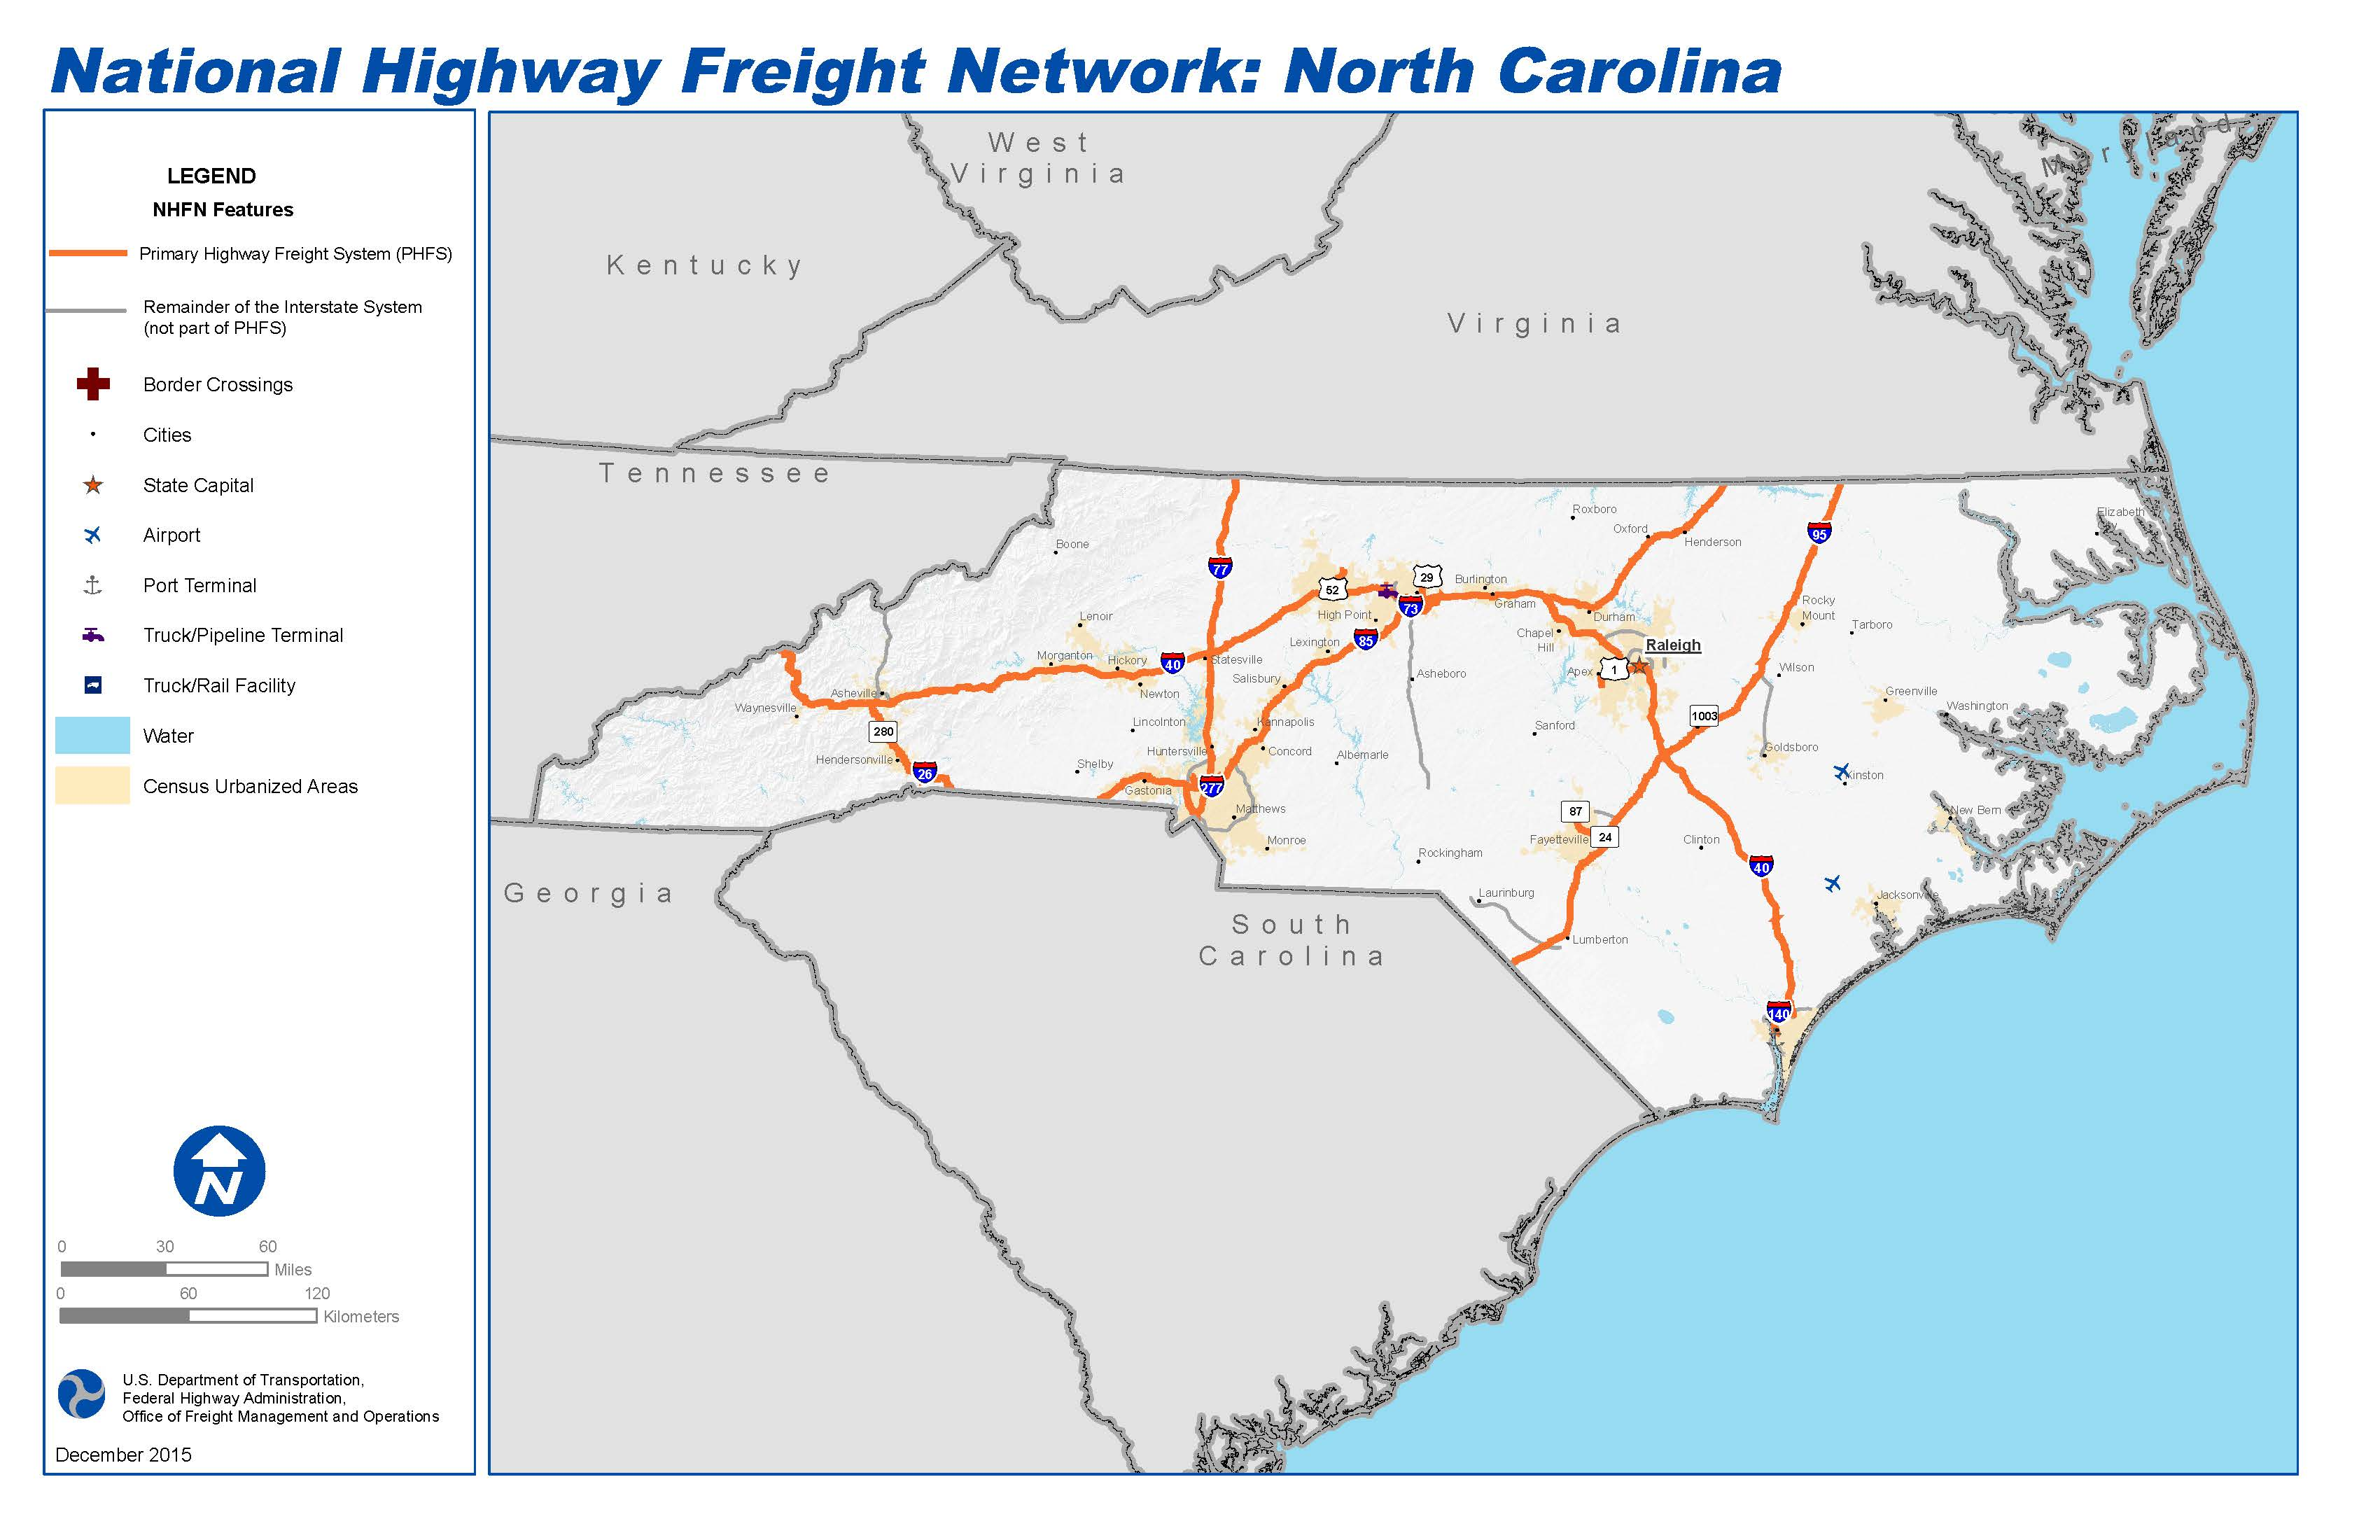 National Highway Freight Network Map And Tables For North Carolina - A map of north carolina